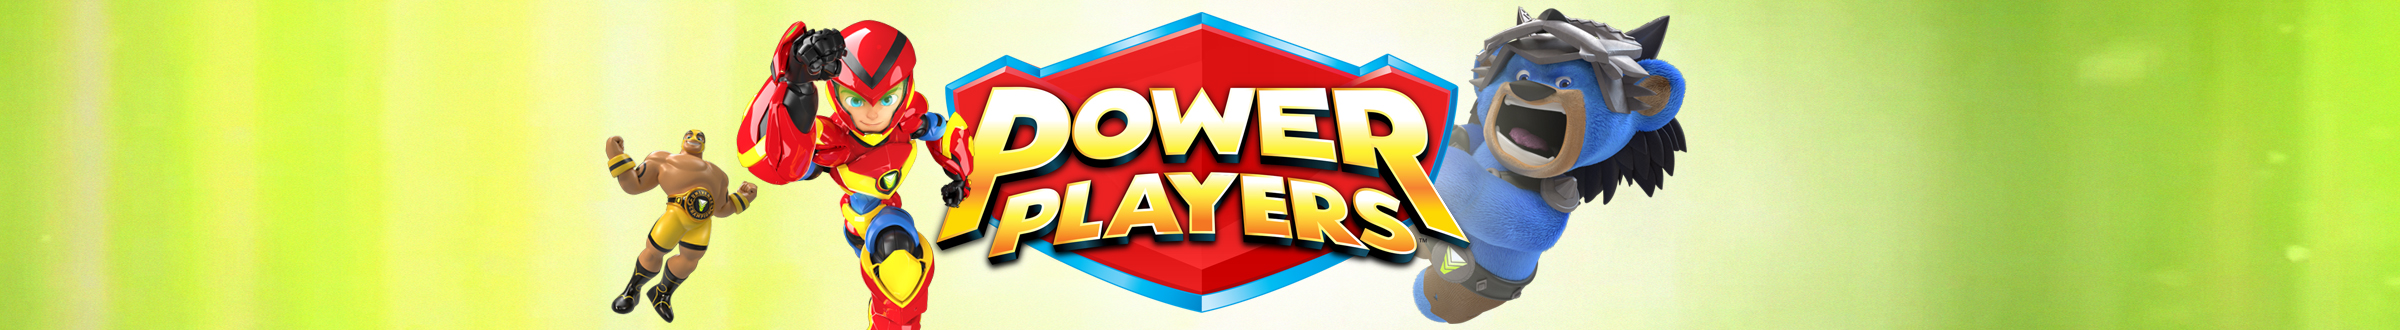 Logo der Power Players